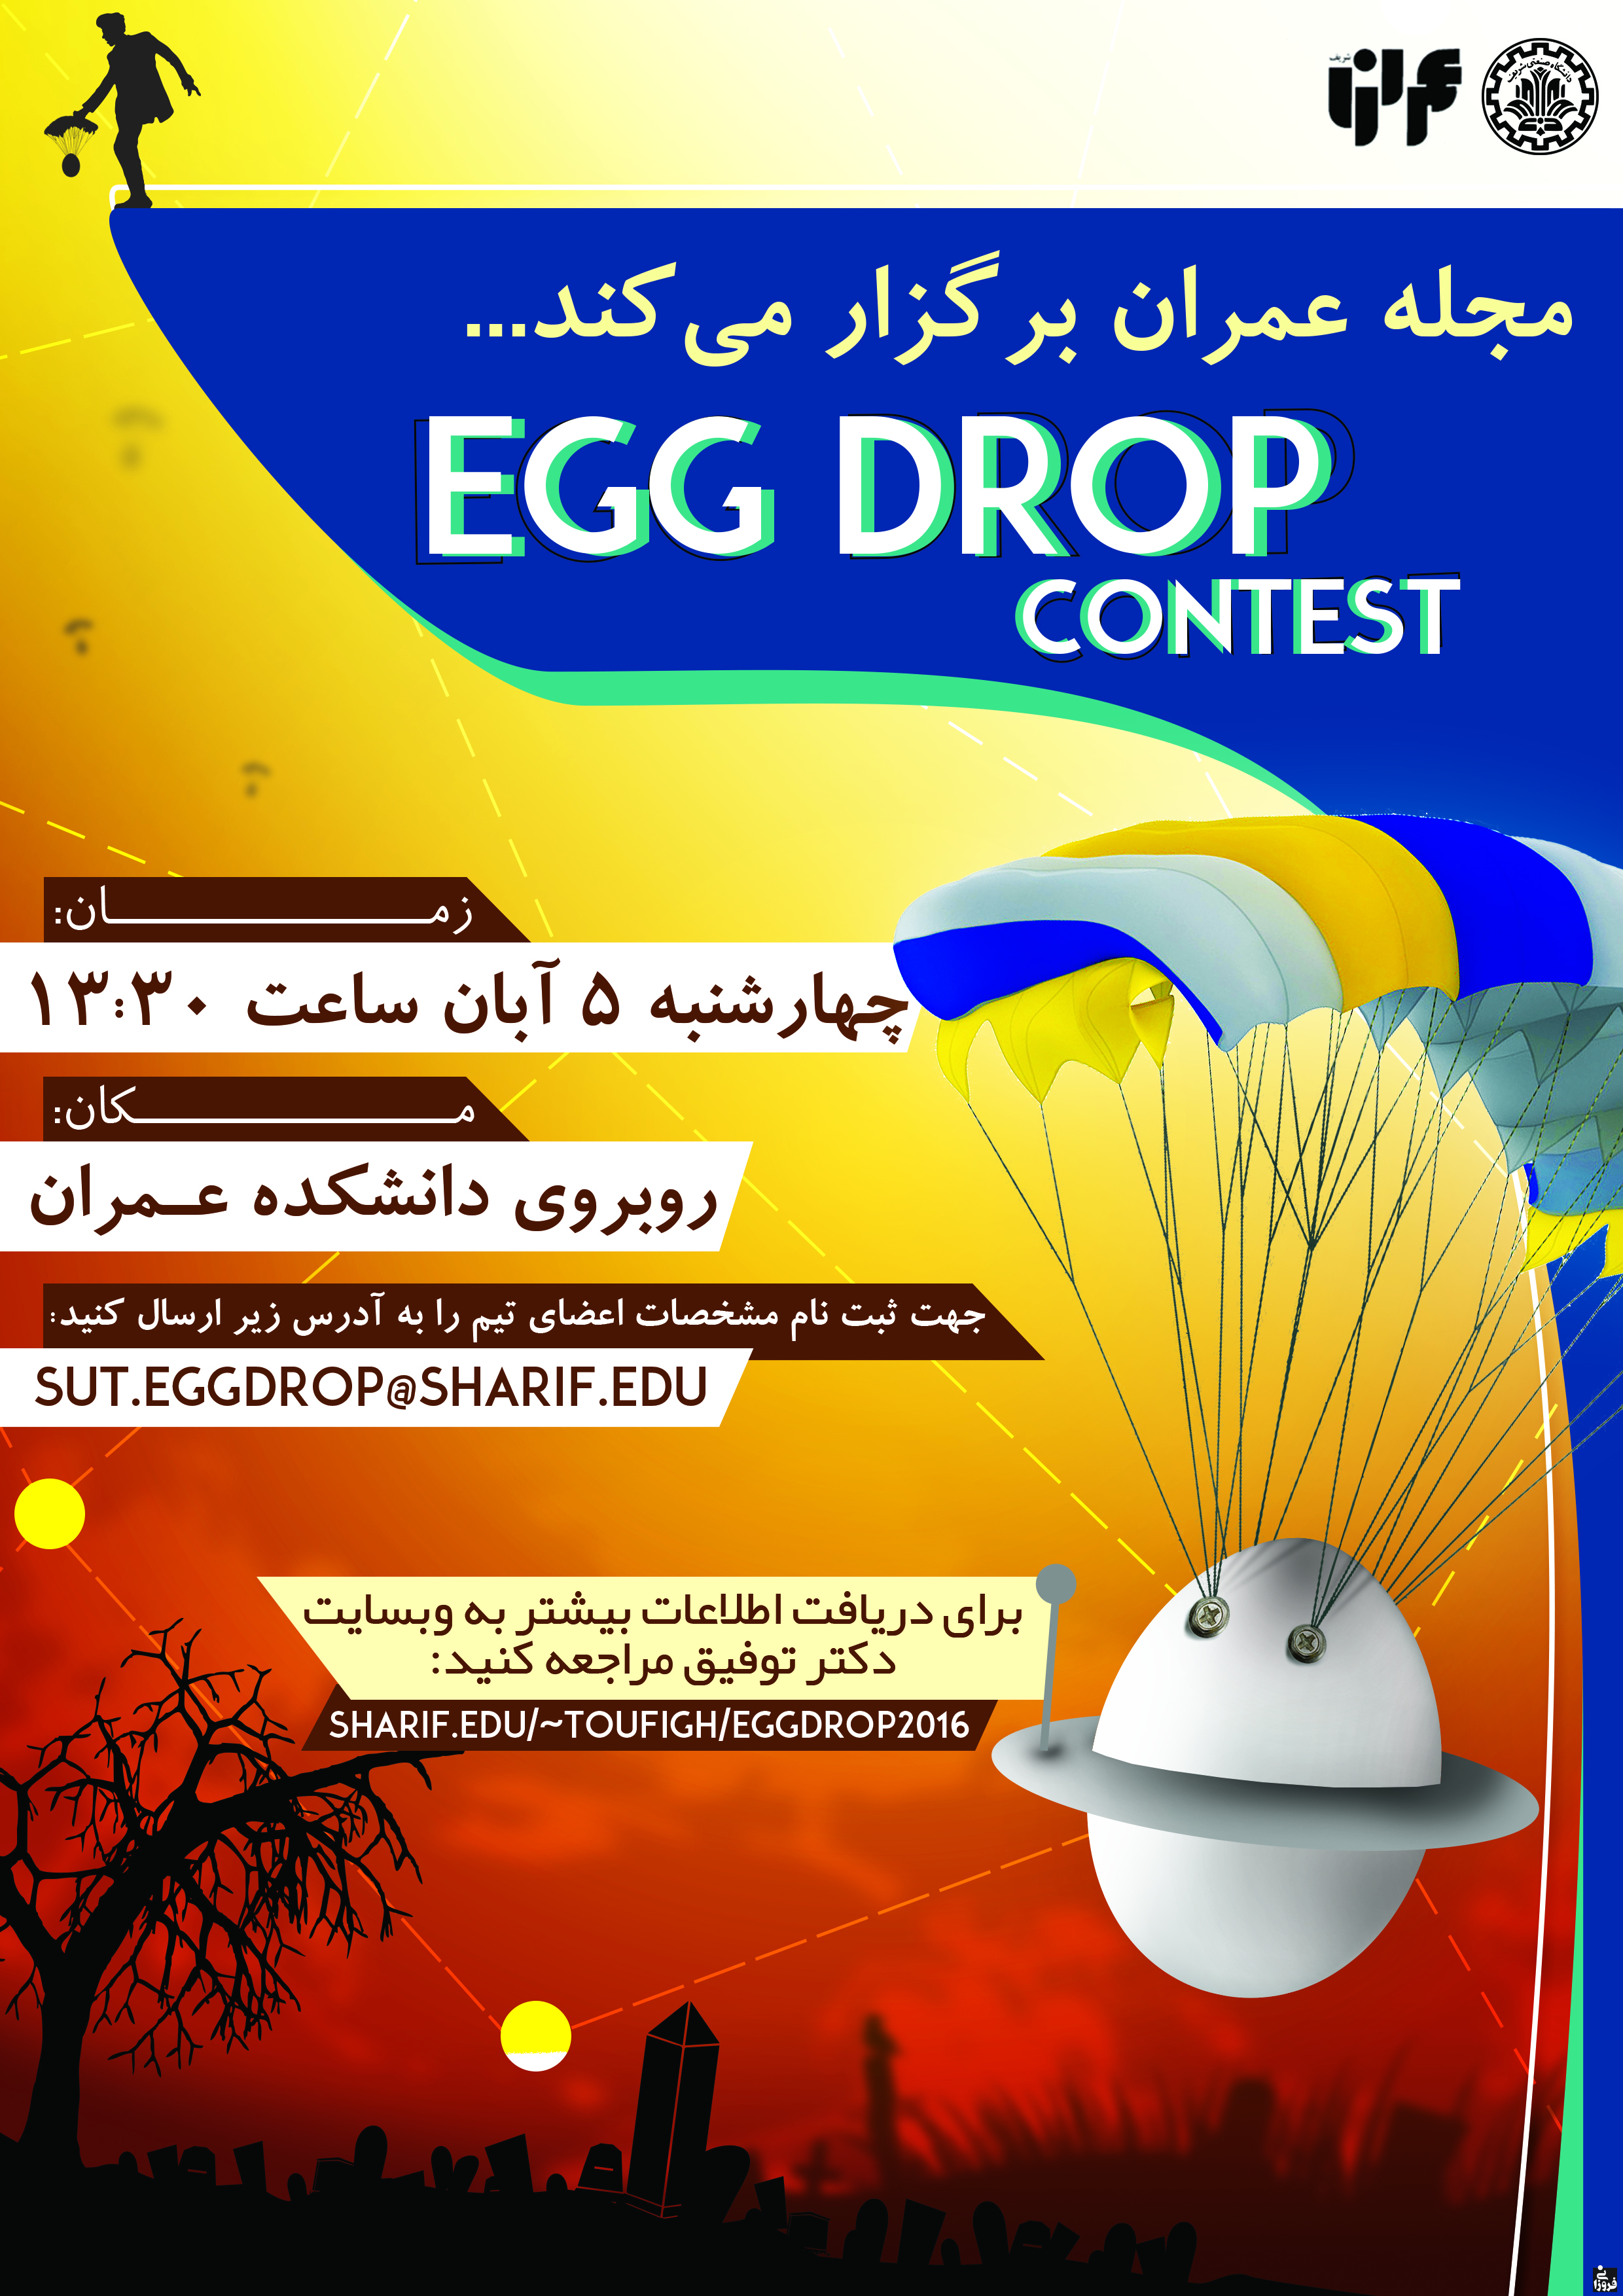 the egg drop challenge essay Egg drop essay in our physic class we did an egg drop experiment we used some vocabulary words to answer the question also did formulas to solve some problems.